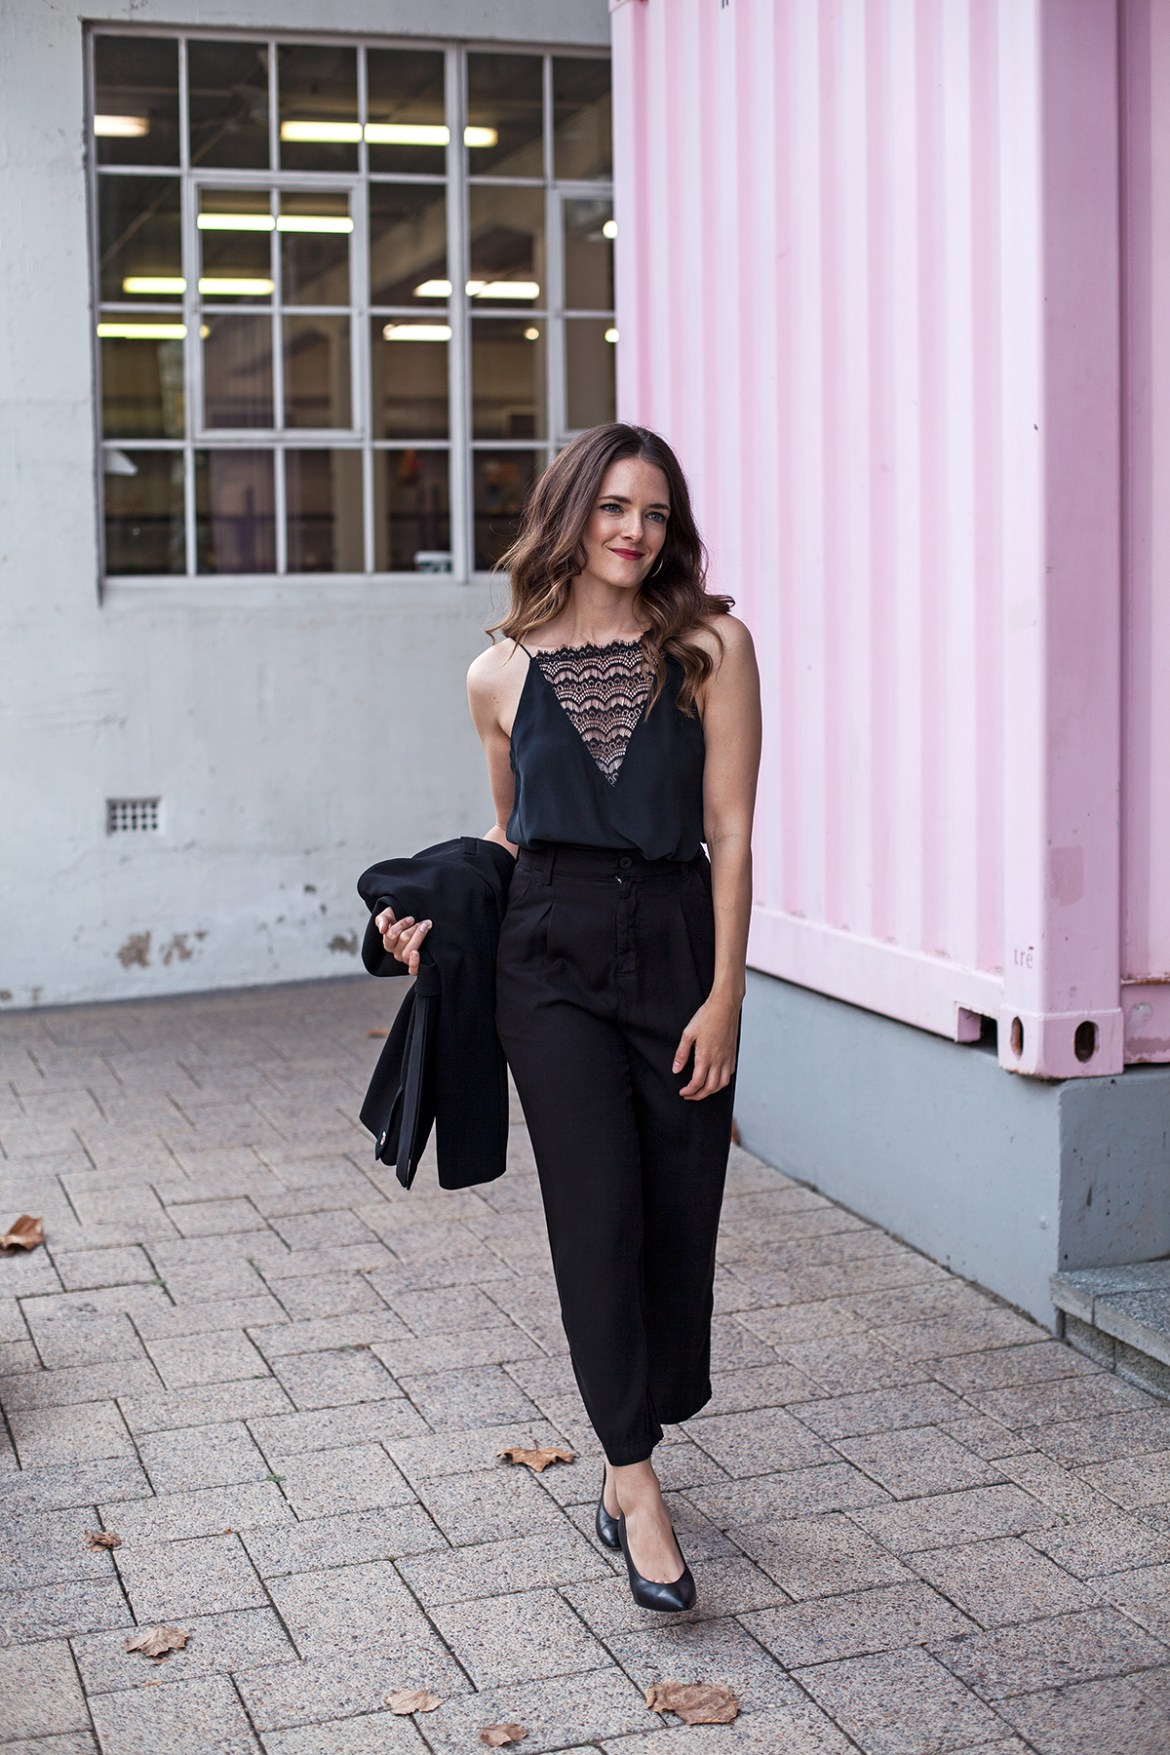 black lace camisole and crop trousers street style outfit worn by Jenelle Witty from Inspiring Wit, an Australian personal style blog. For City of Perth winter fashion at Periscope boutique